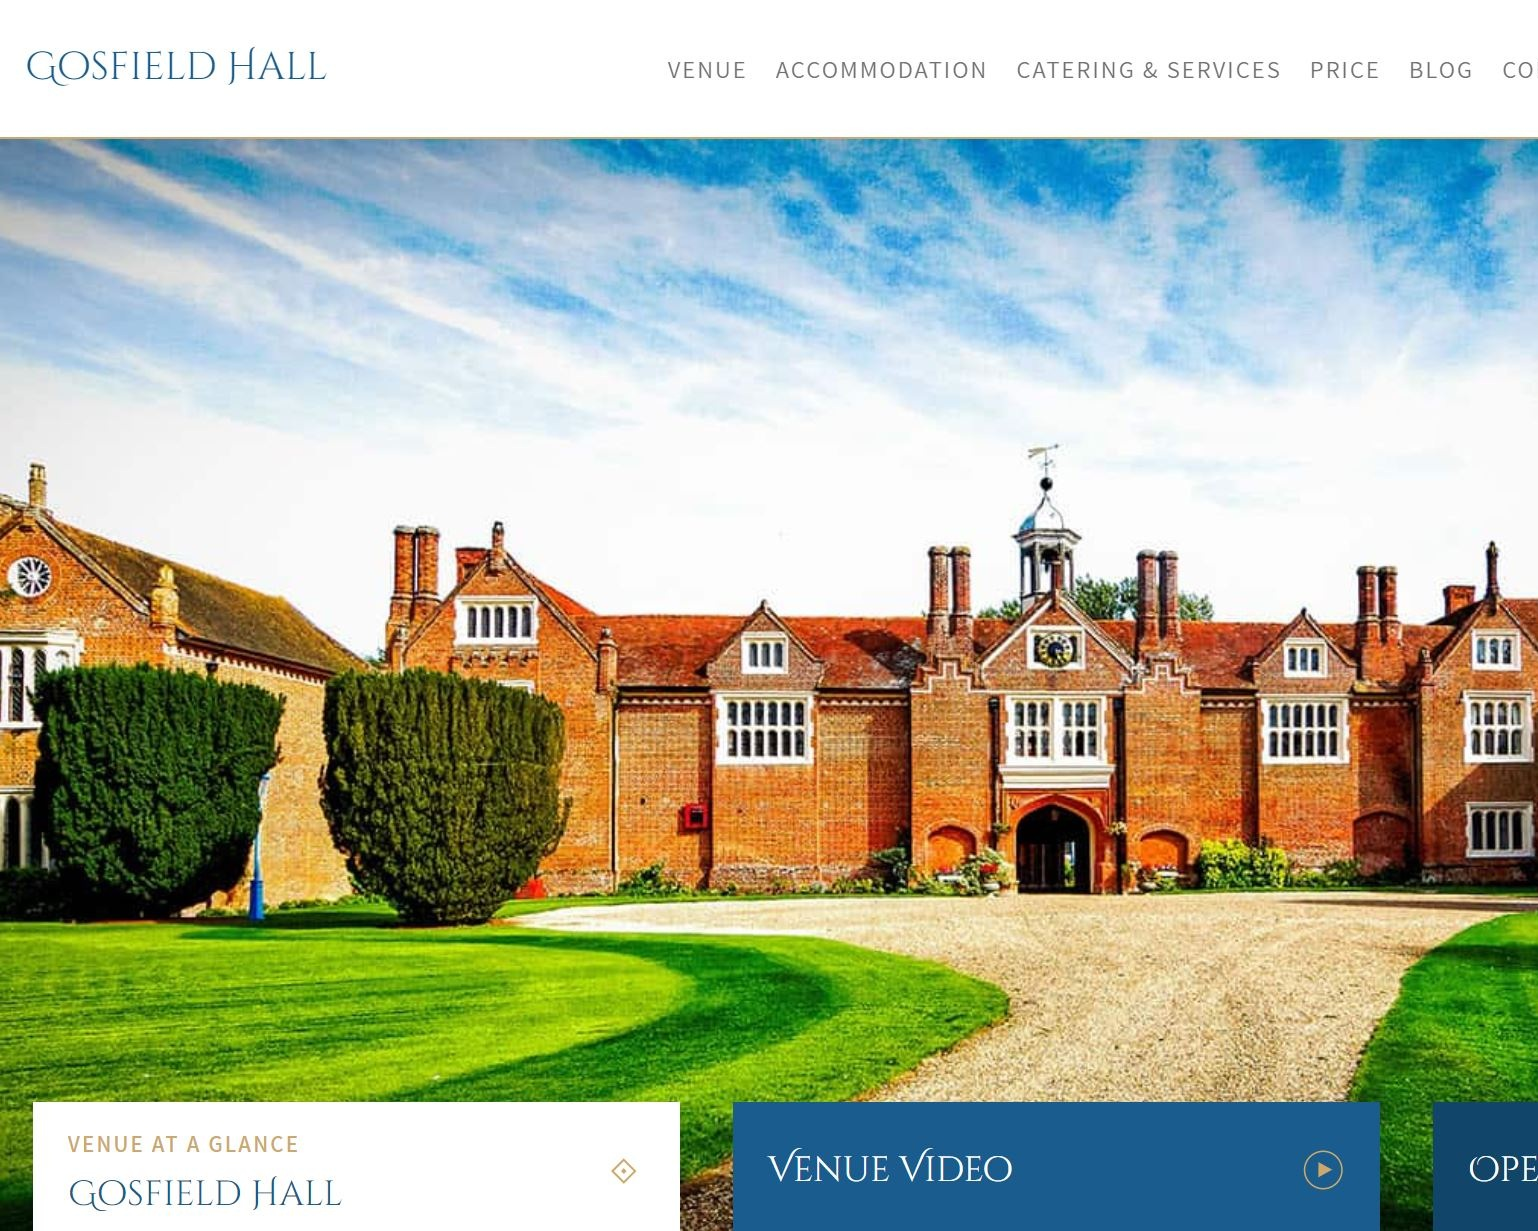 Gosfield Hall - A former palace that allows you to follow in the footsteps of royalty on your special day. A stunning Georgian mansion set in 10 acres of manicured grounds and parkland, with a ballroom, reception rooms and bridal suite to rival them all.